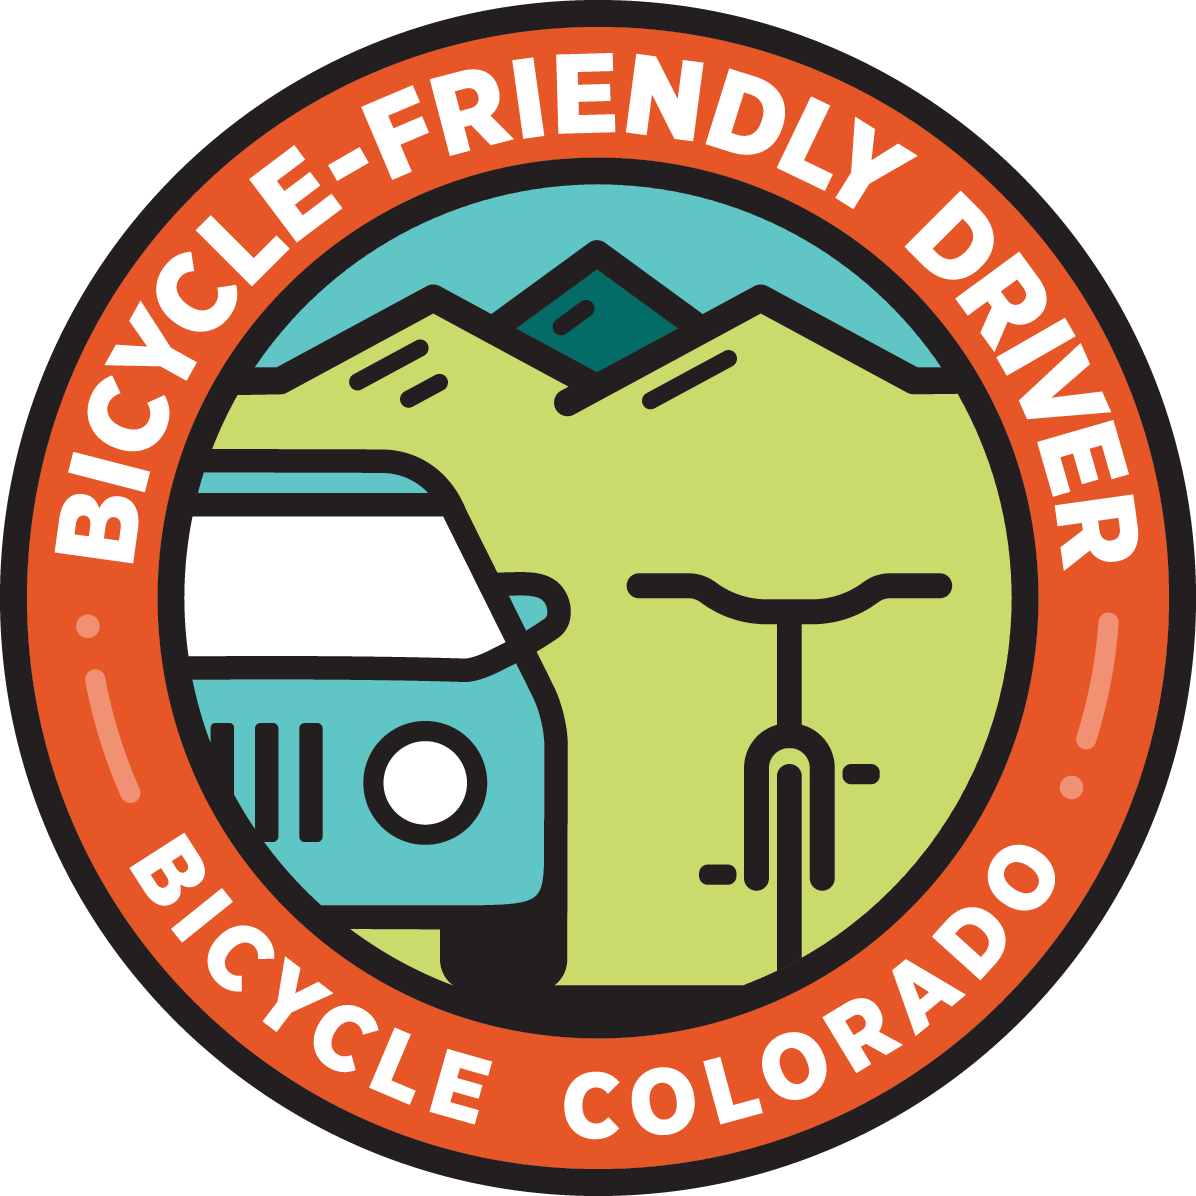 Drivers license clipart first driver. Bicycle friendly classes offered